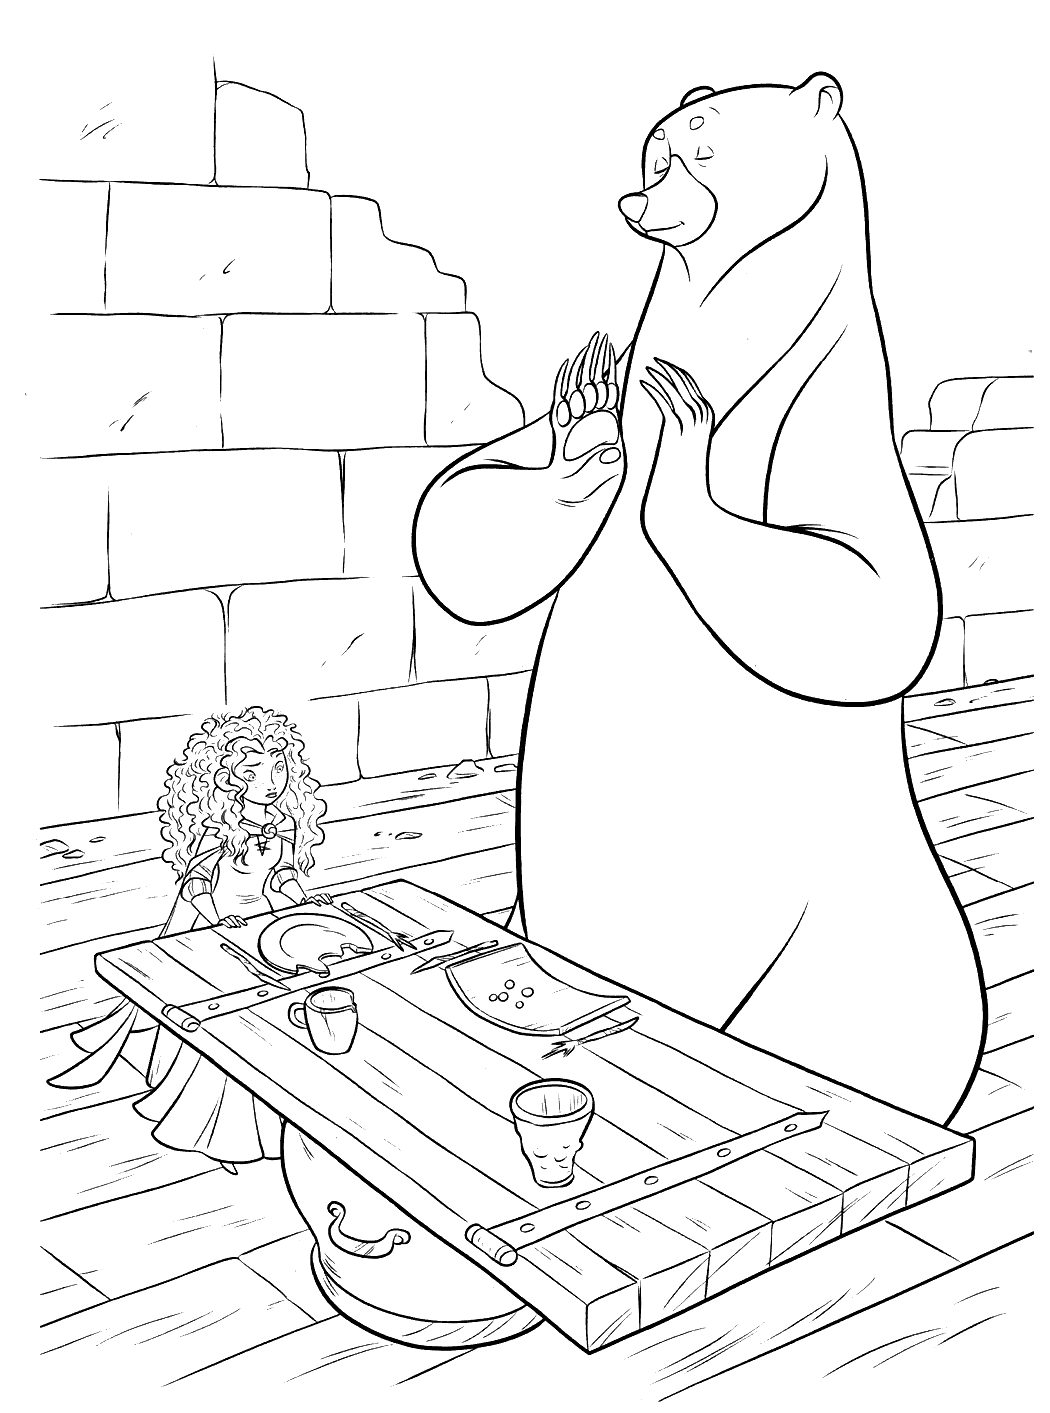 Brave to color for kids - Brave - Coloring pages for kids